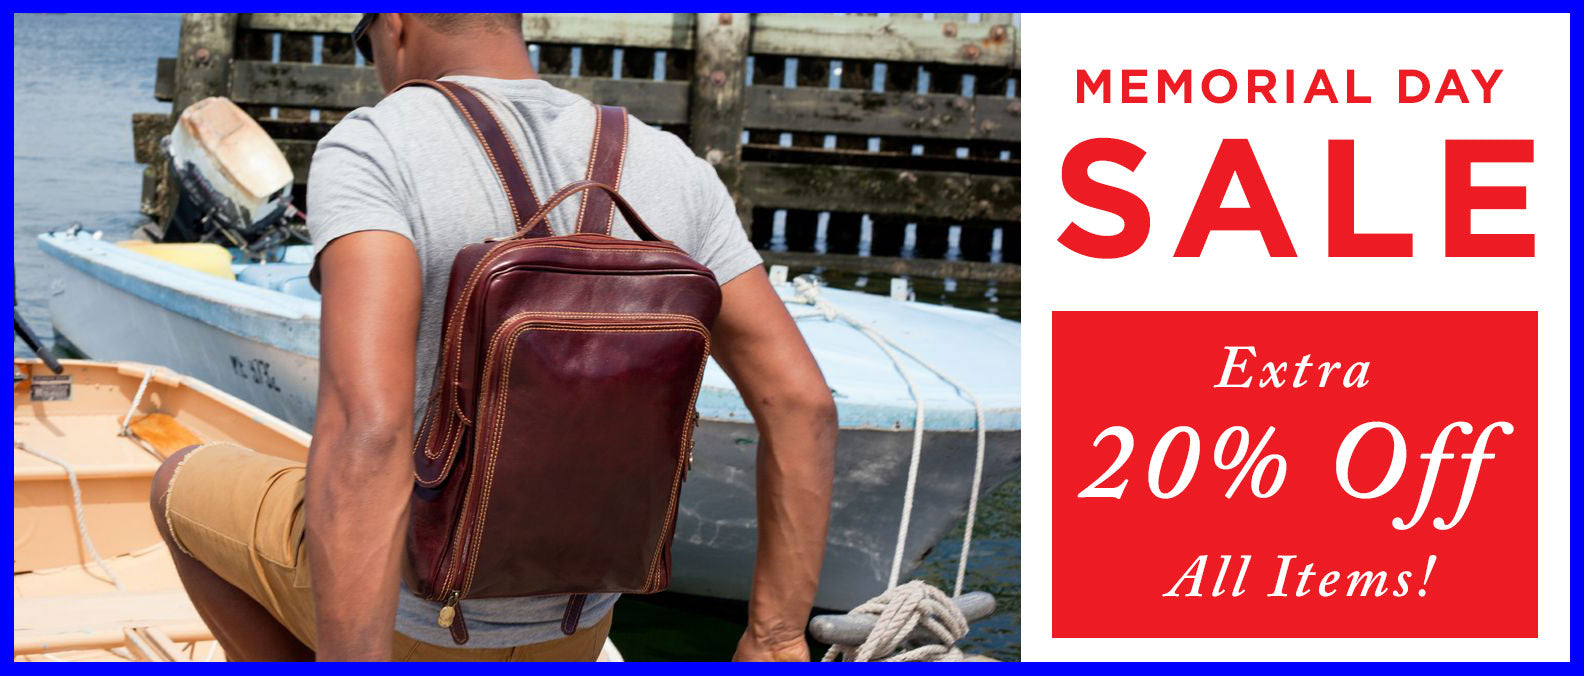 Memorial Day Leather Bag Sale